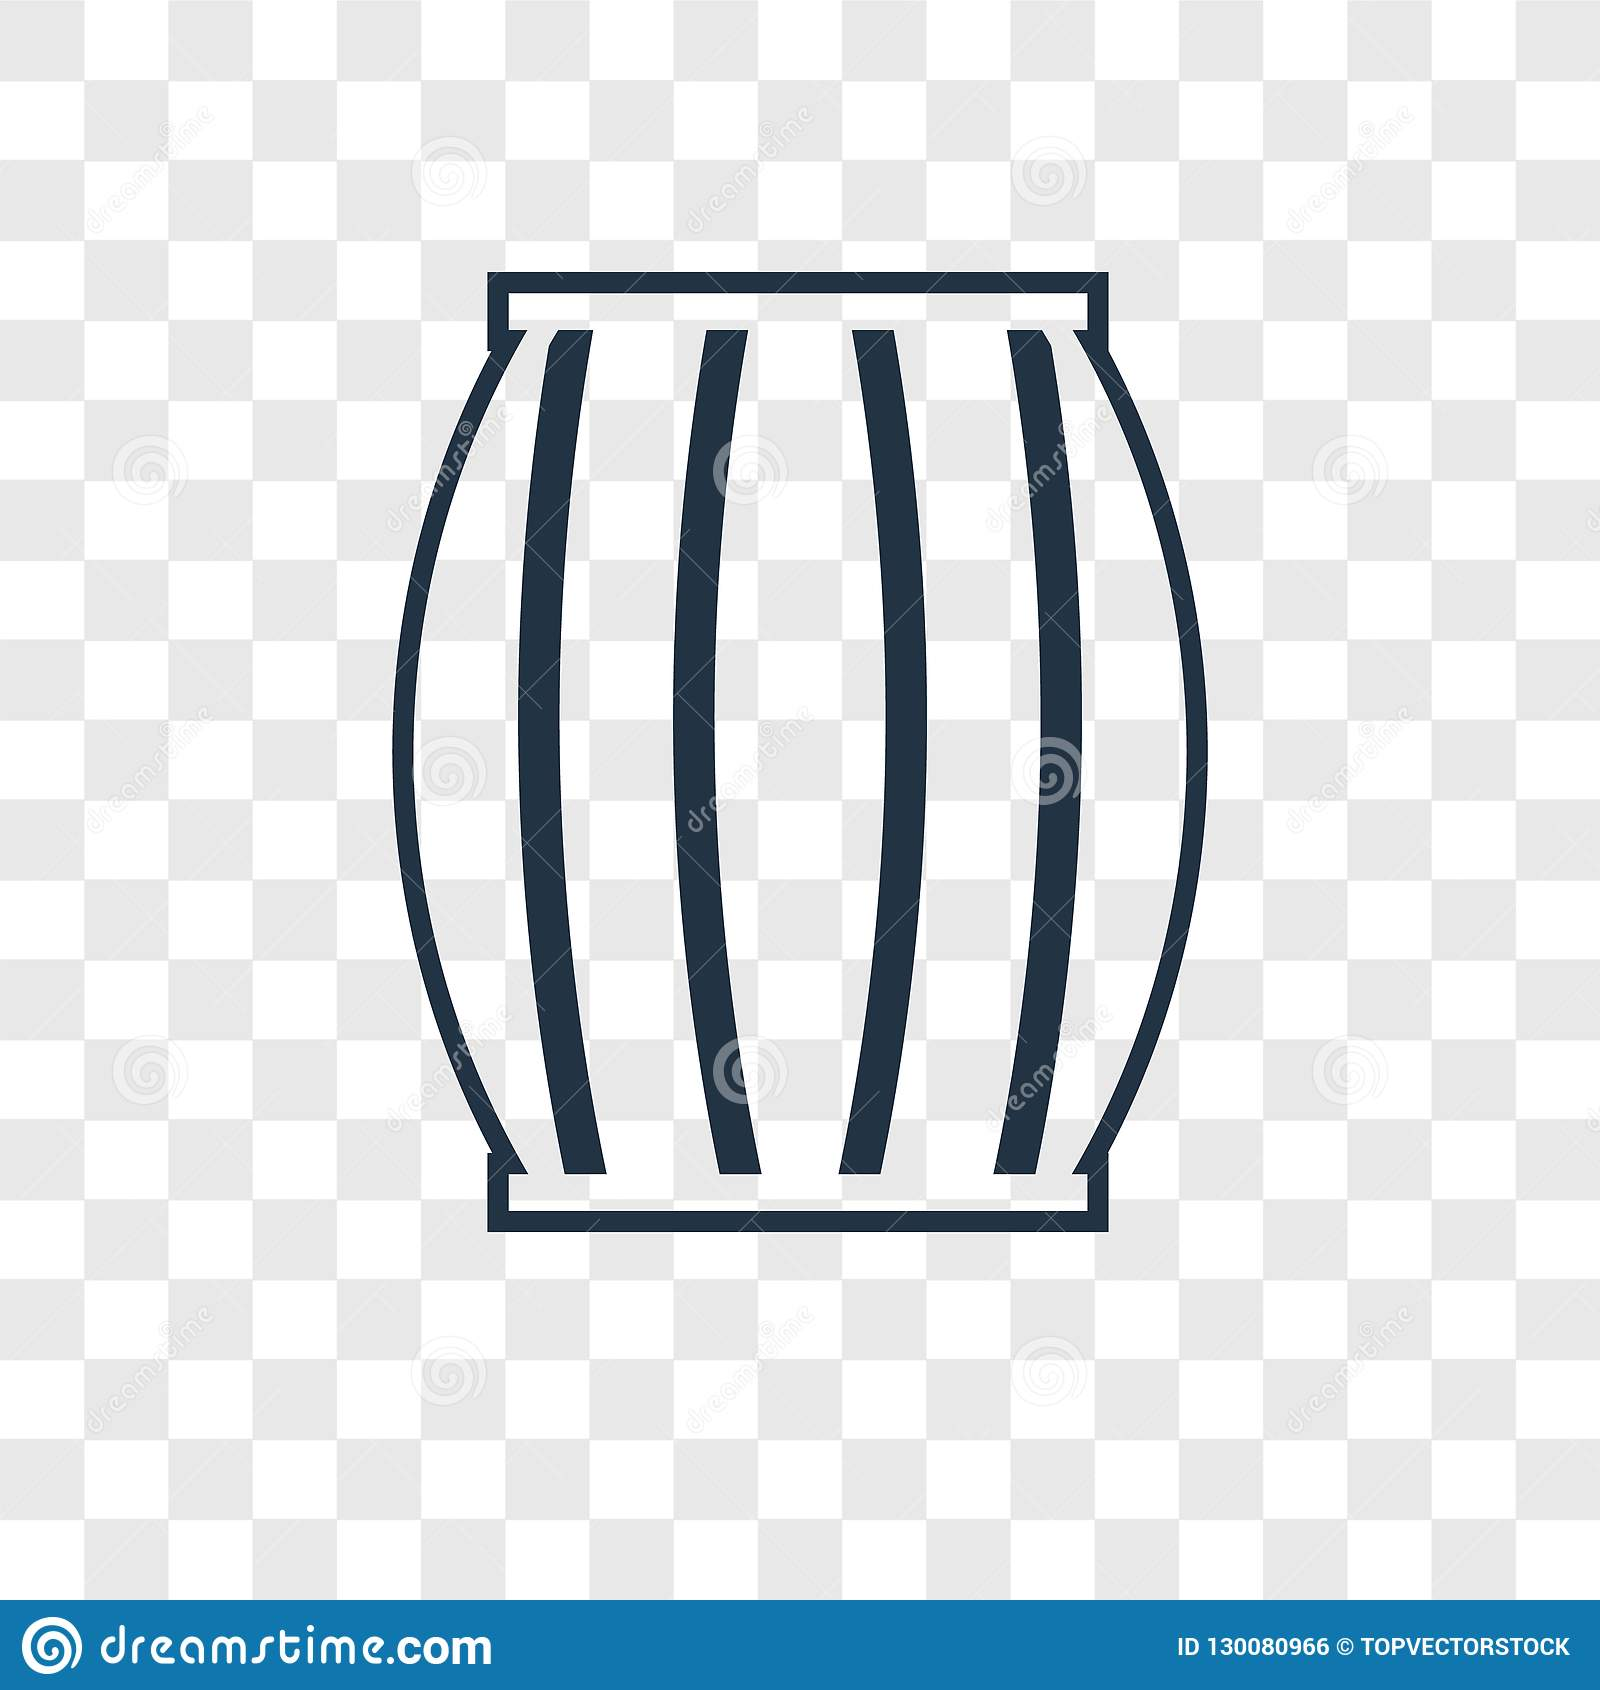 Barrel concept vector linear icon isolated on transparent background, Barrel concept transparency logo in outline style